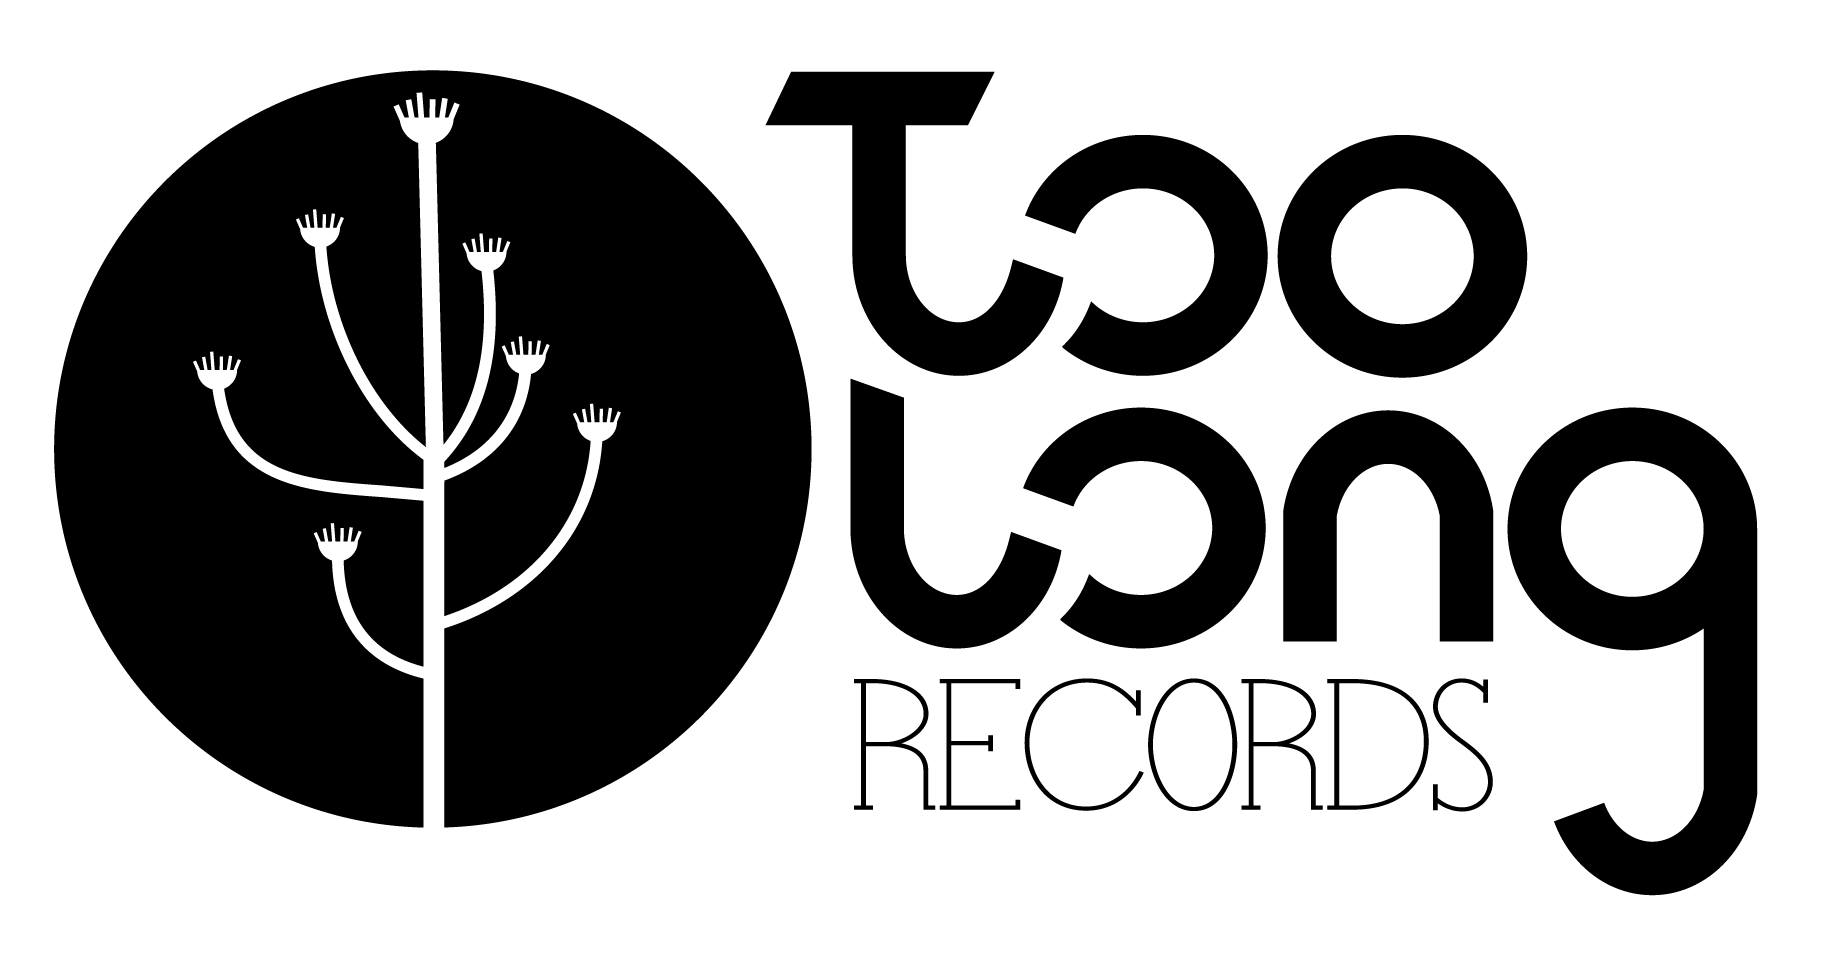 logo-toolong-records-comm-vrrrr-2016